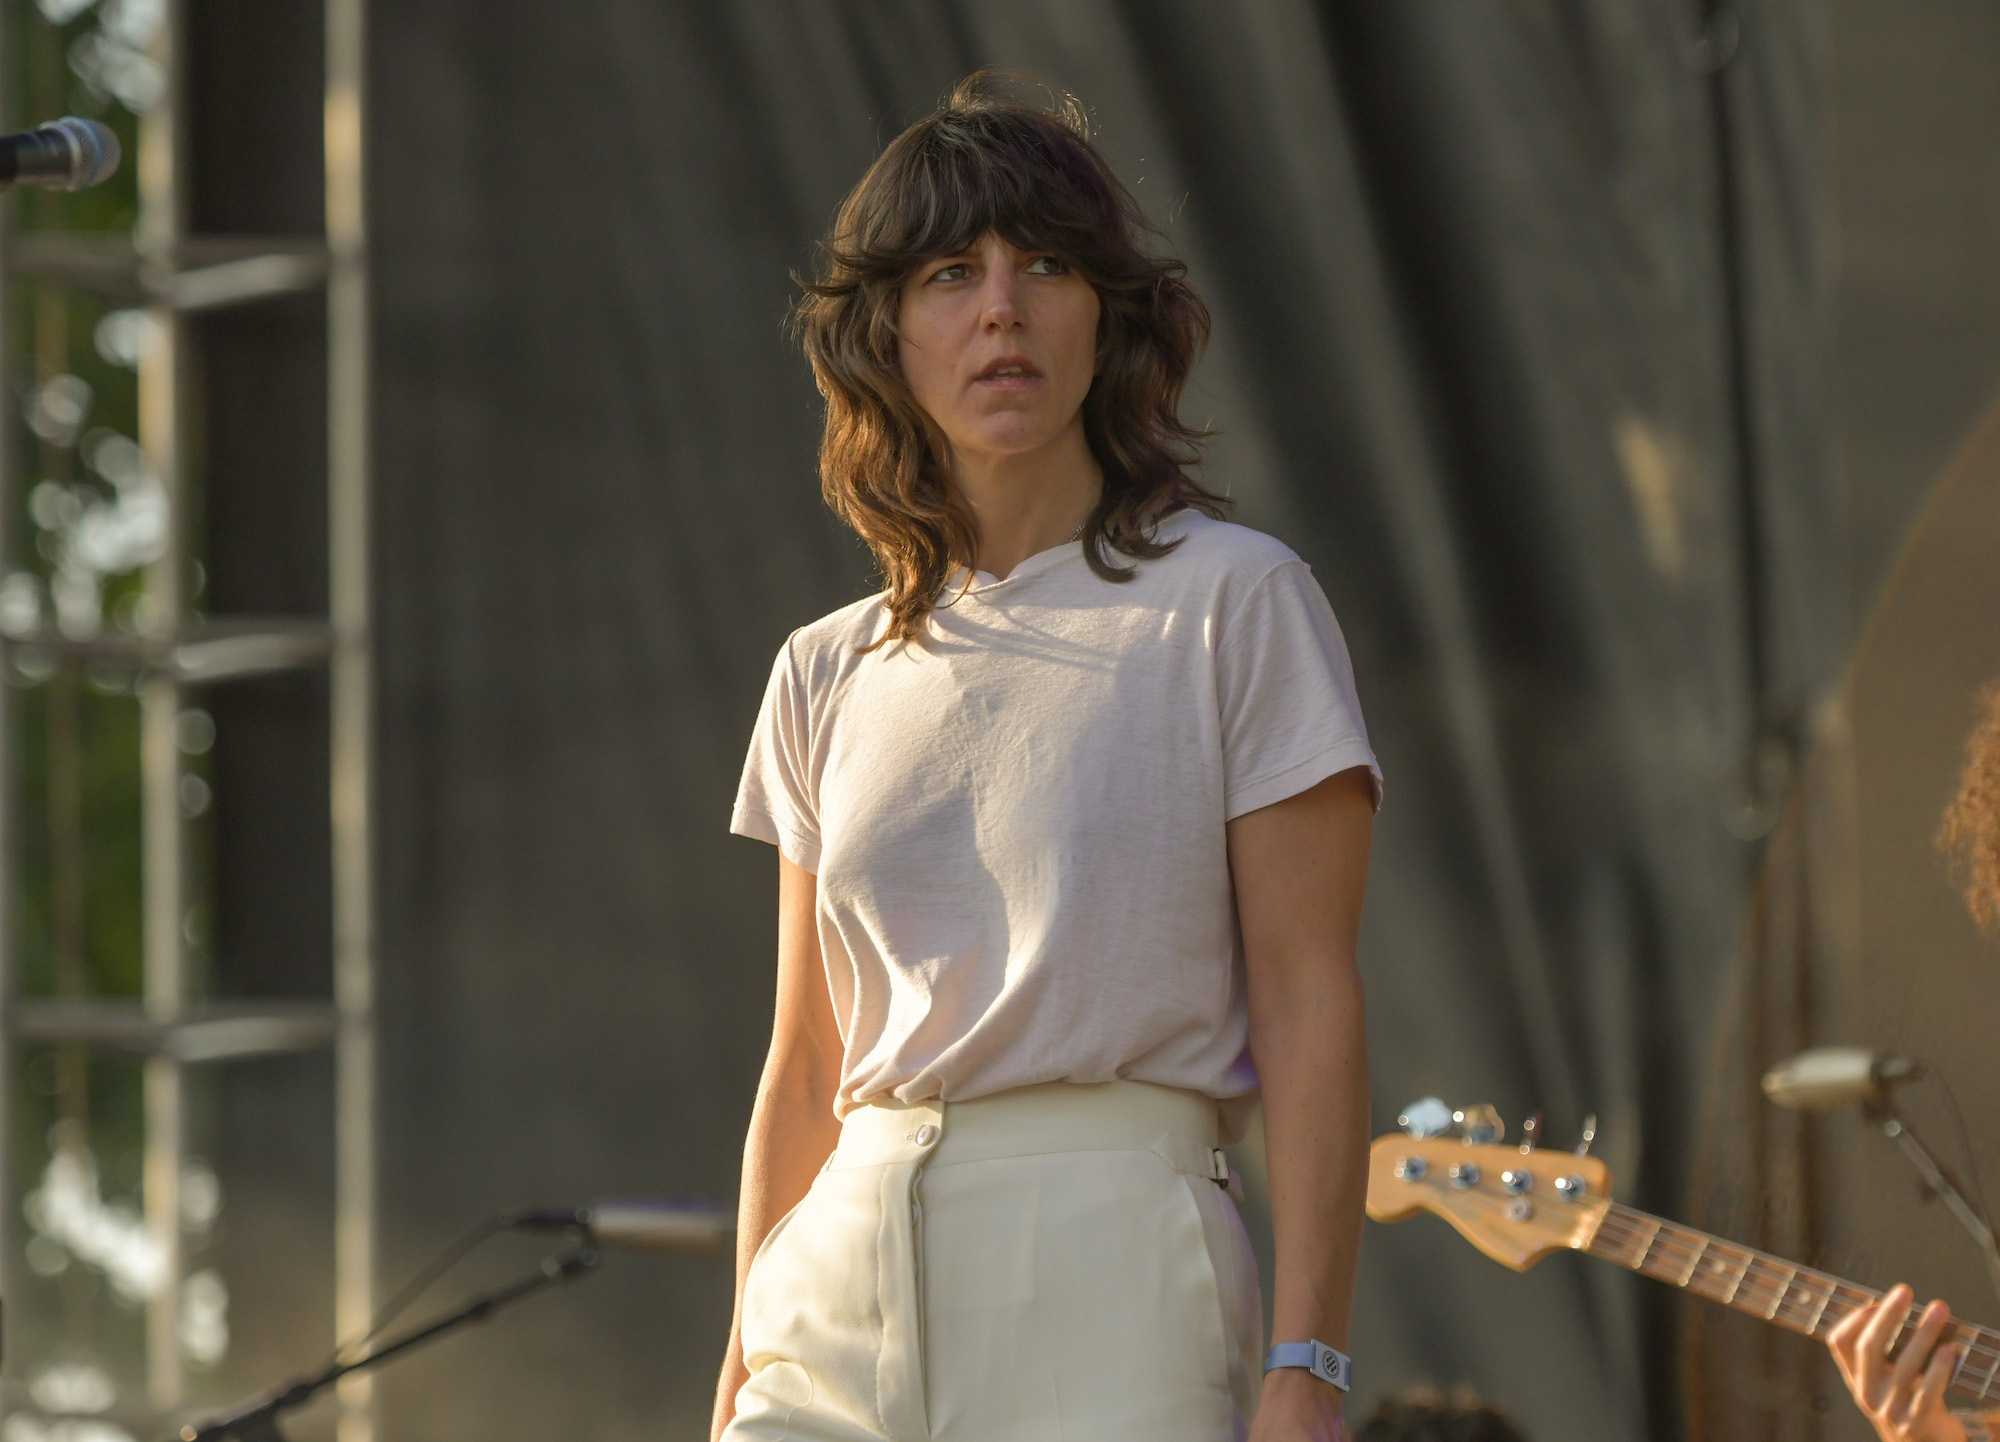 The Fiery Furnaces - Photo © 2021 by: Roman Sobus